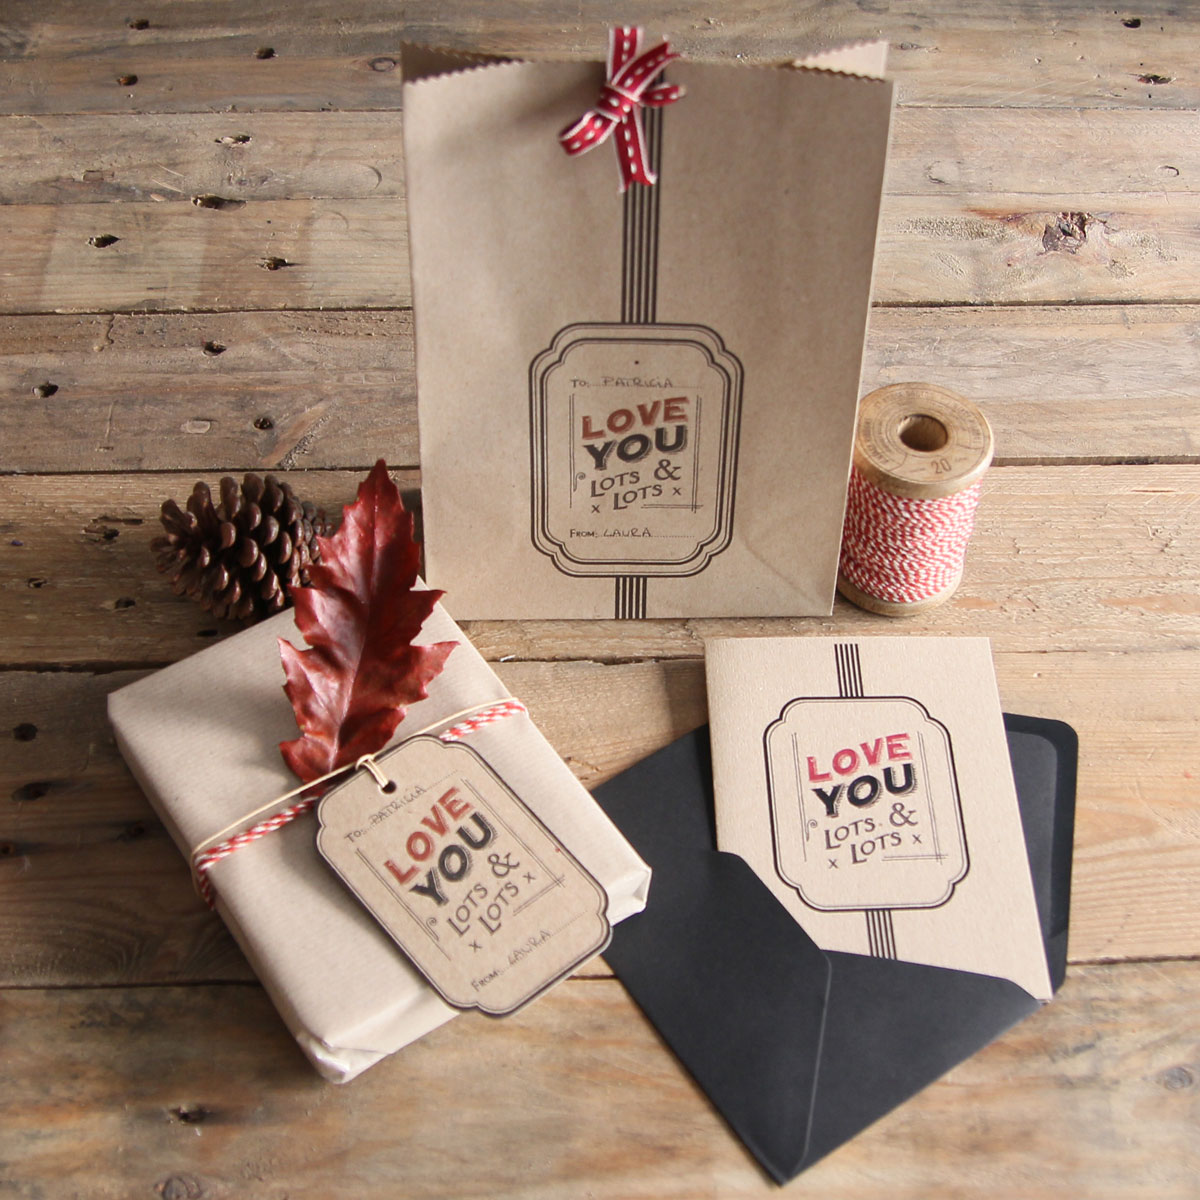 Mr_wonderful_shop_decoracion_navidad_2014_022